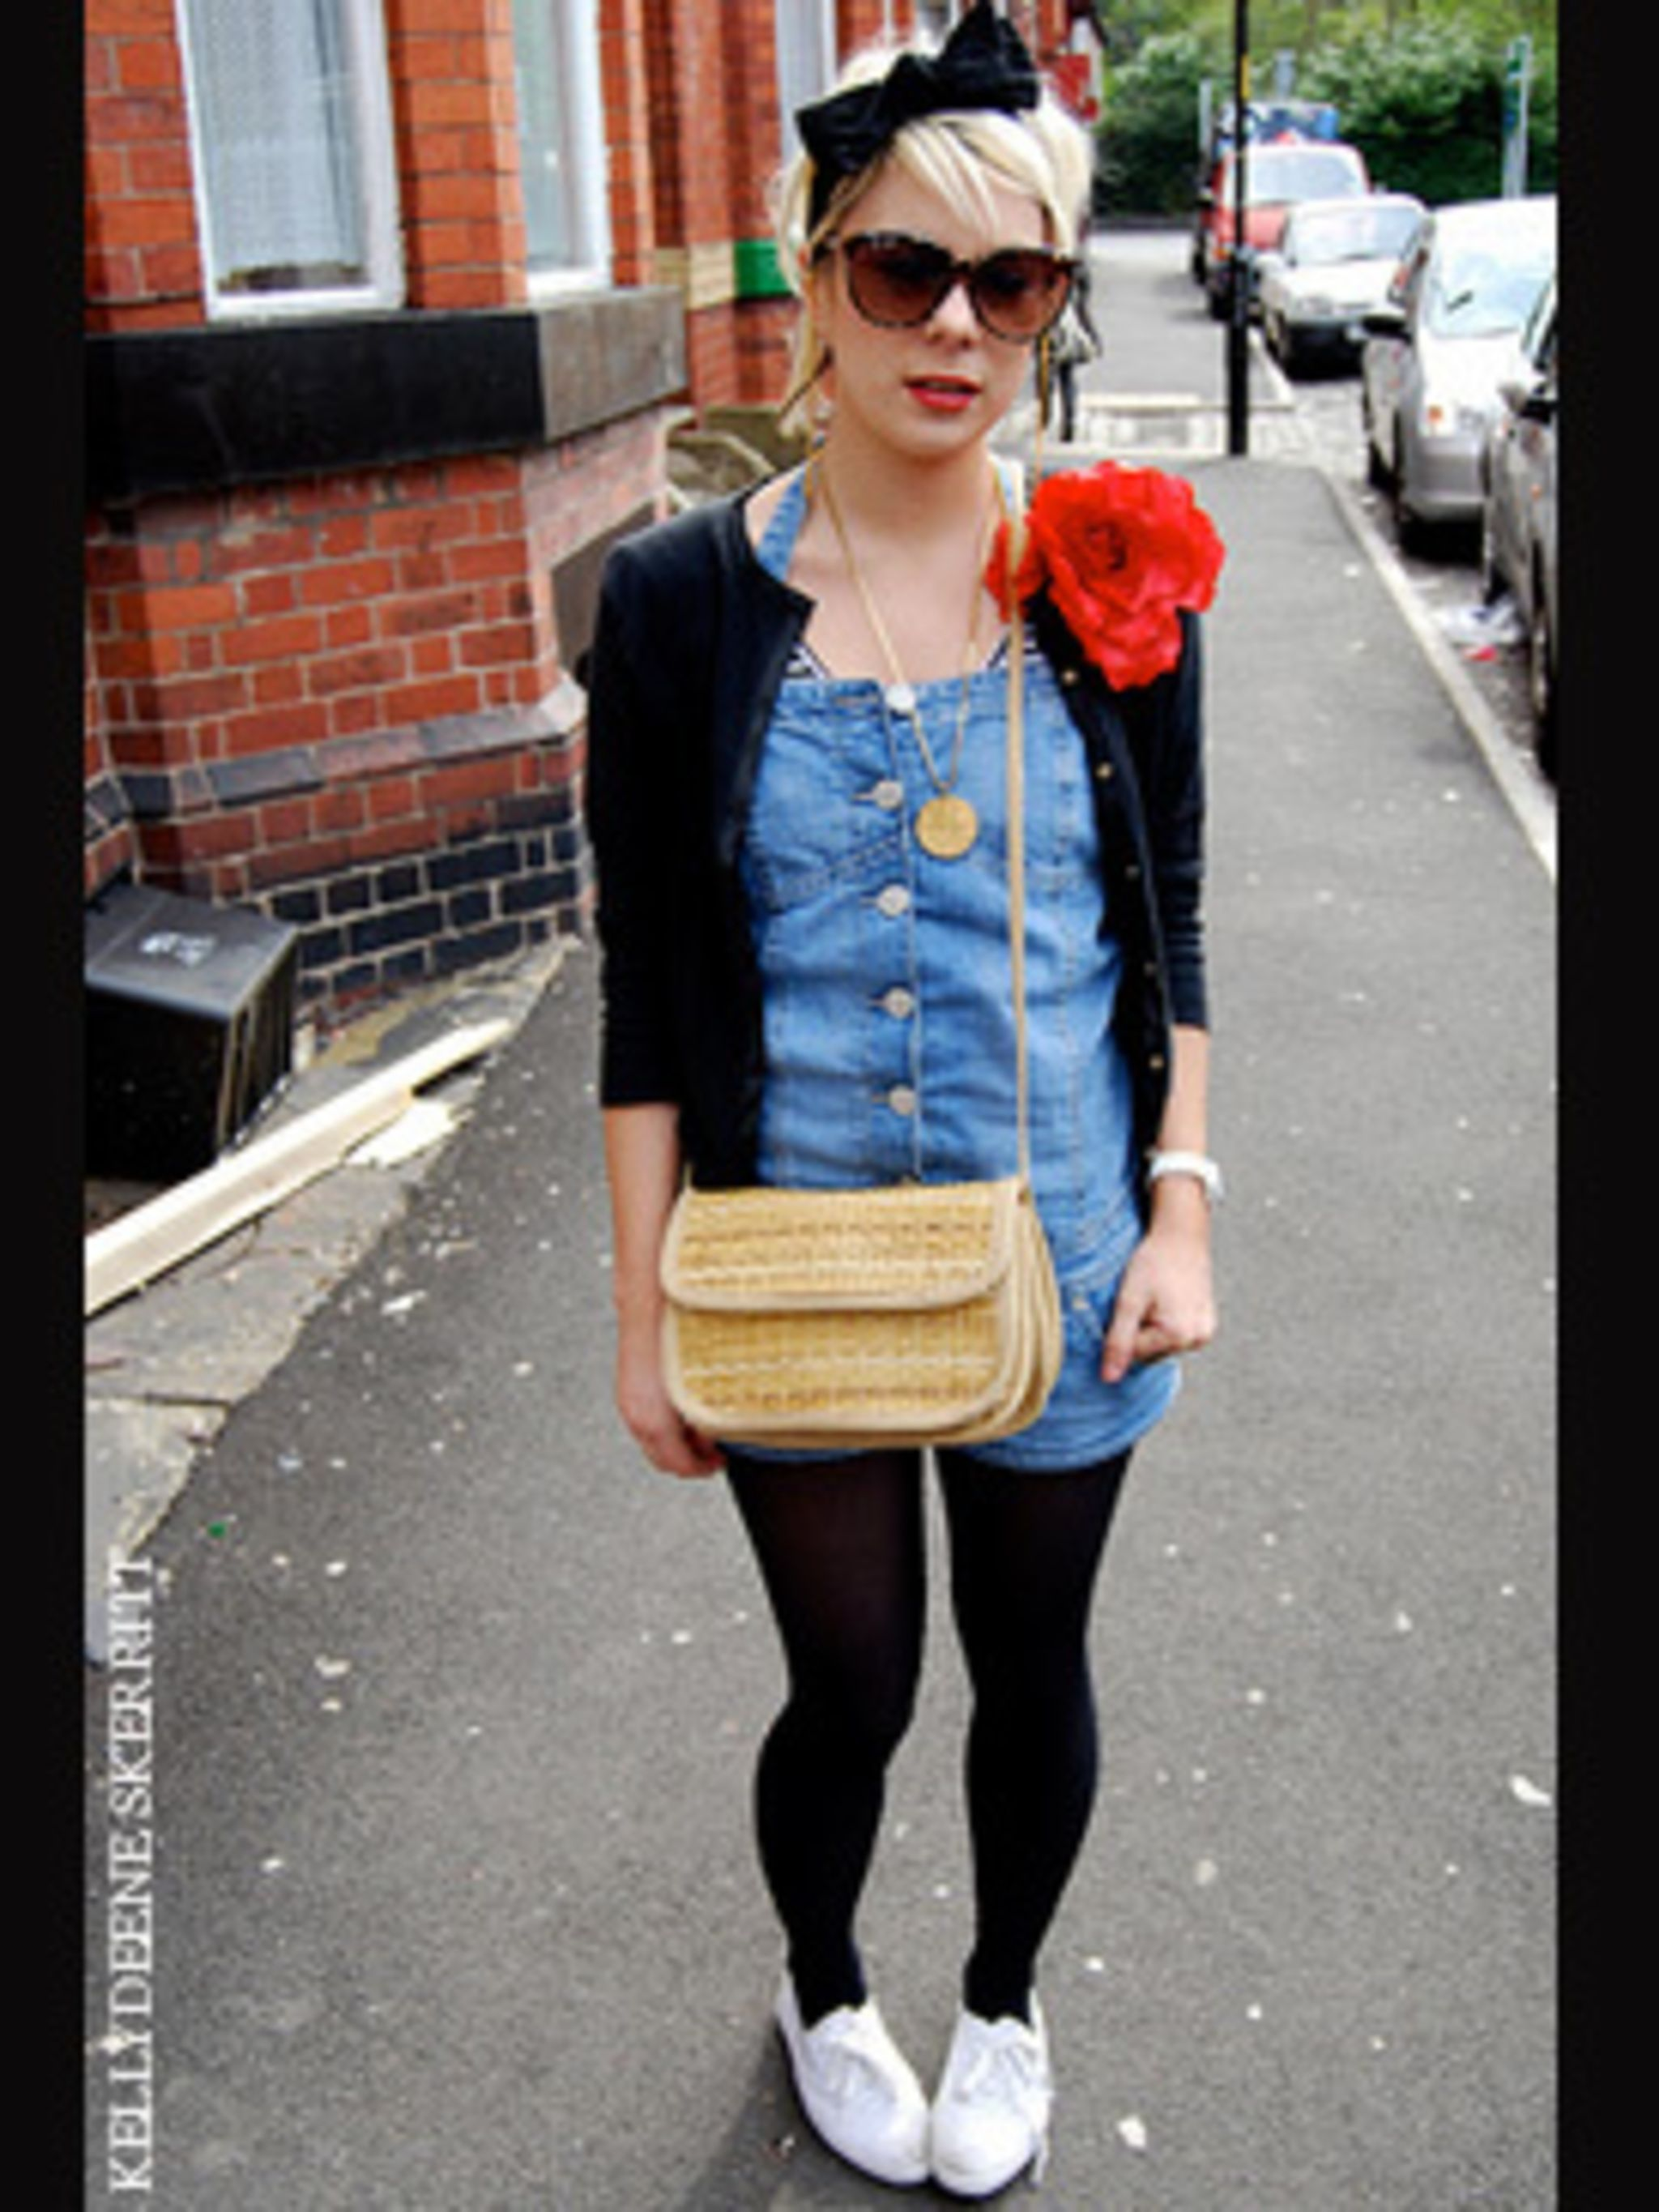 <p>This look ticks so many summer trend boxes: jumpsuit, check. Raffia bag, check. Floral corsage (very SATC), check. And, of course, headband, check. This eclectic layered look is a great way to stay summery and prepared for changing weather. And note of